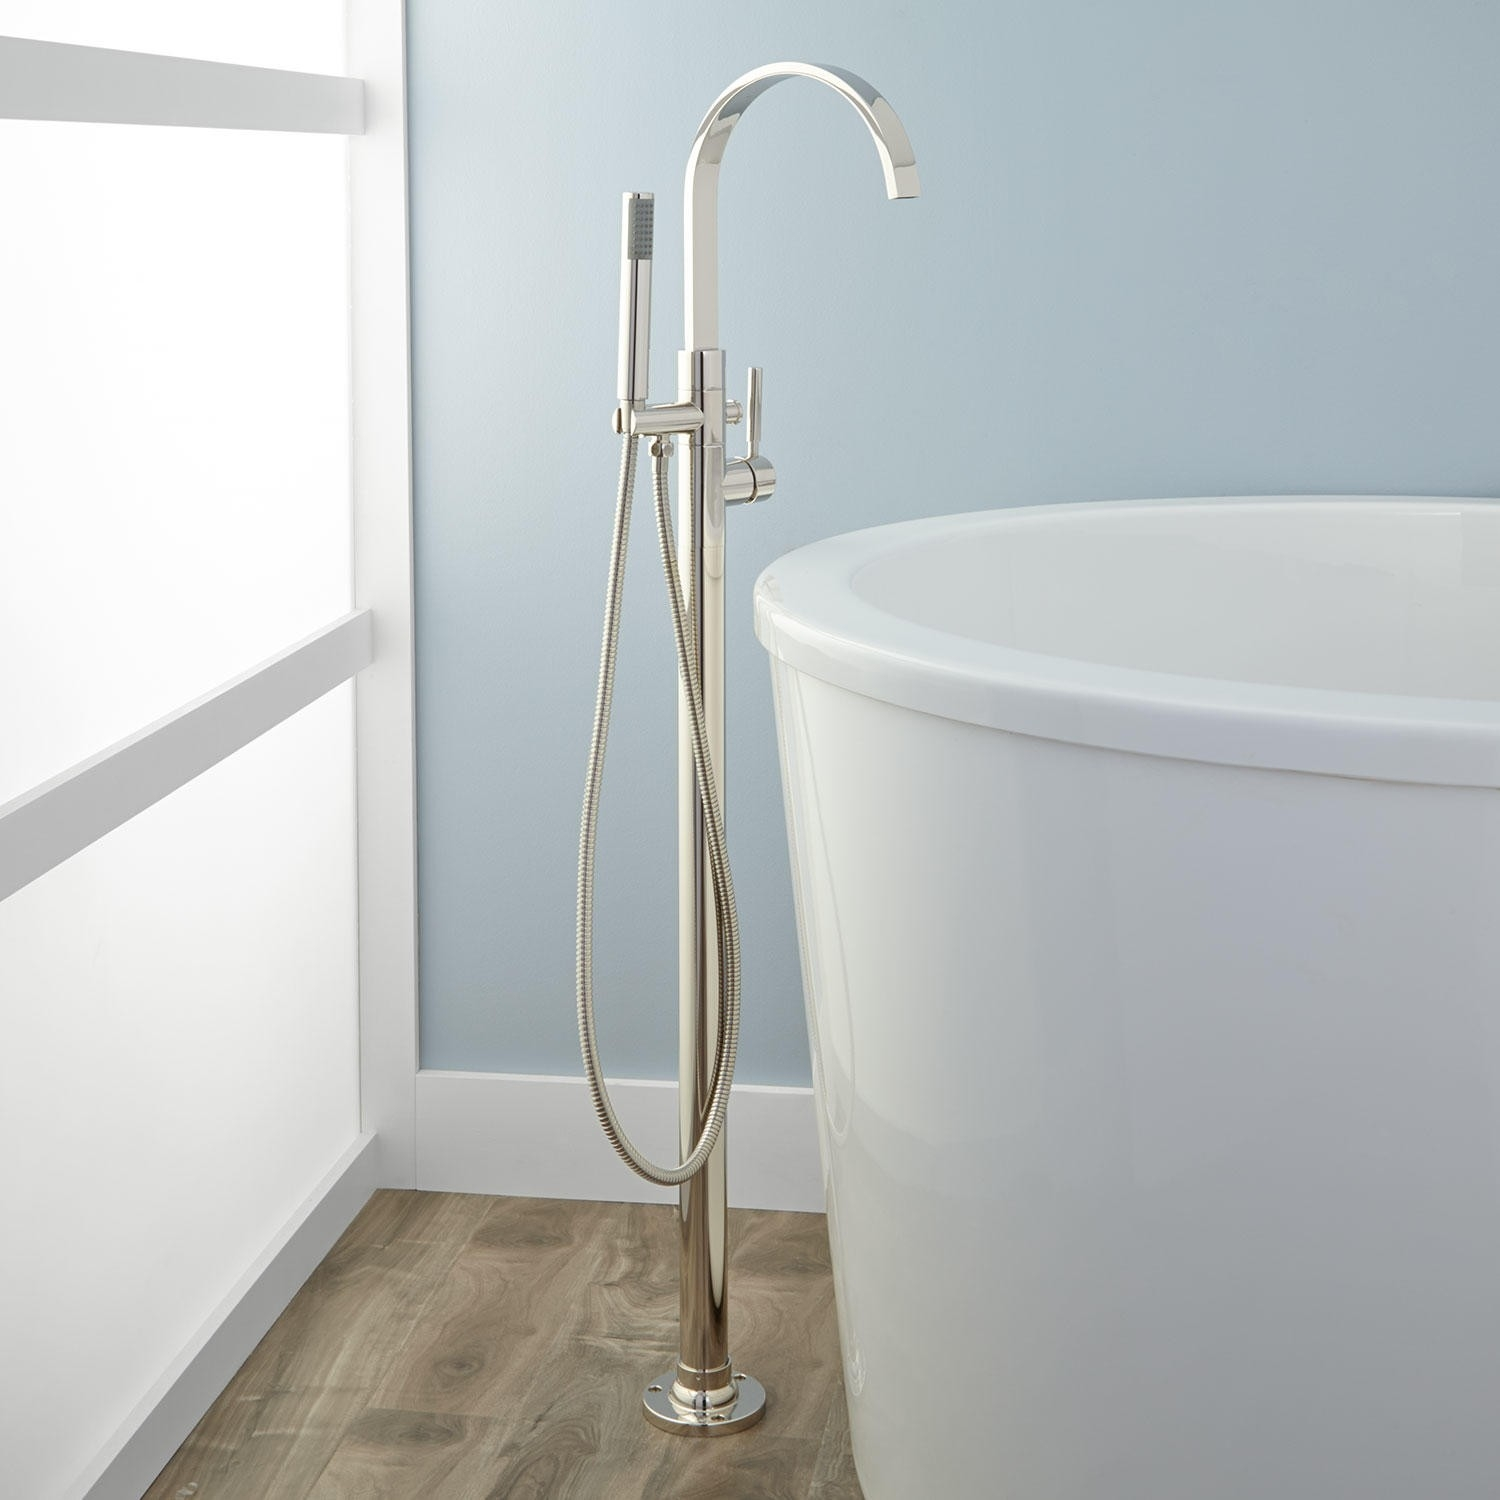 Clever Handheld Shower Garden Tub Faucets With Handheld Shower Garden Tub Faucets Handheldshower Mount Freestanding Tub Fillers Signature Hardware X Garden Tub Faucets Garden Tub Faucets houzz-03 Freestanding Tub Filler